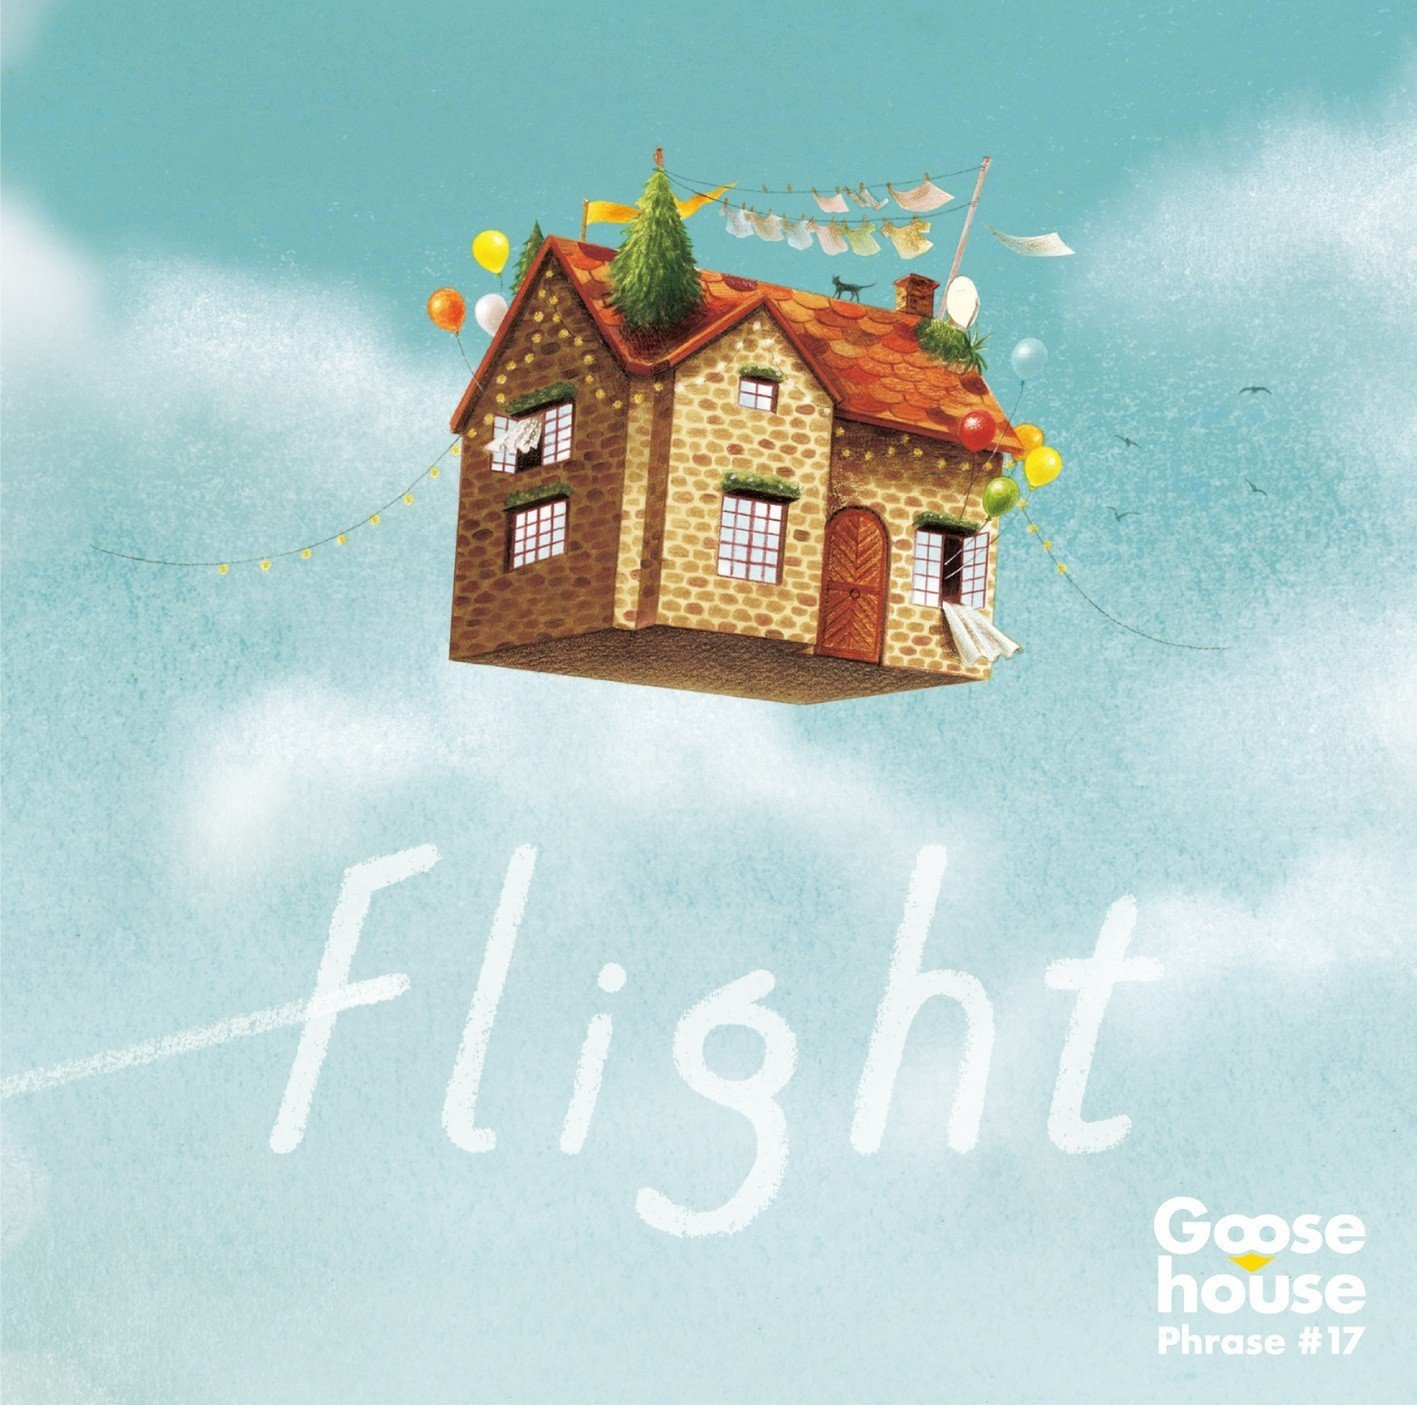 Goose house – Flight (Complete Edition) [FLAC / 24bit Lossless / WEB] [2018.04.11]